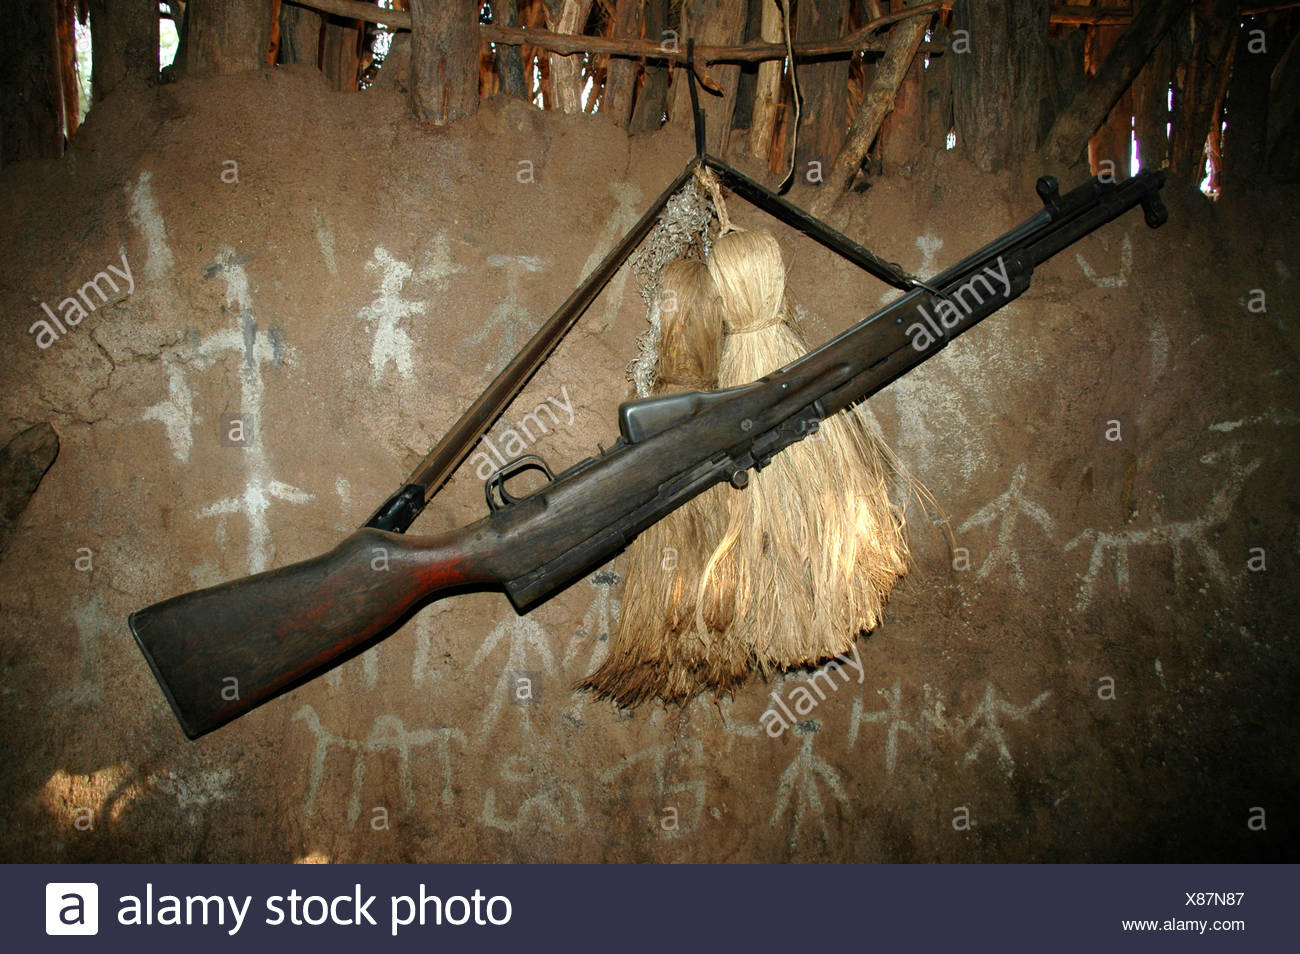 Gun, carbine hanging on the wall of a clay hut, Turmi, Ethiopia, Africa - Stock Image